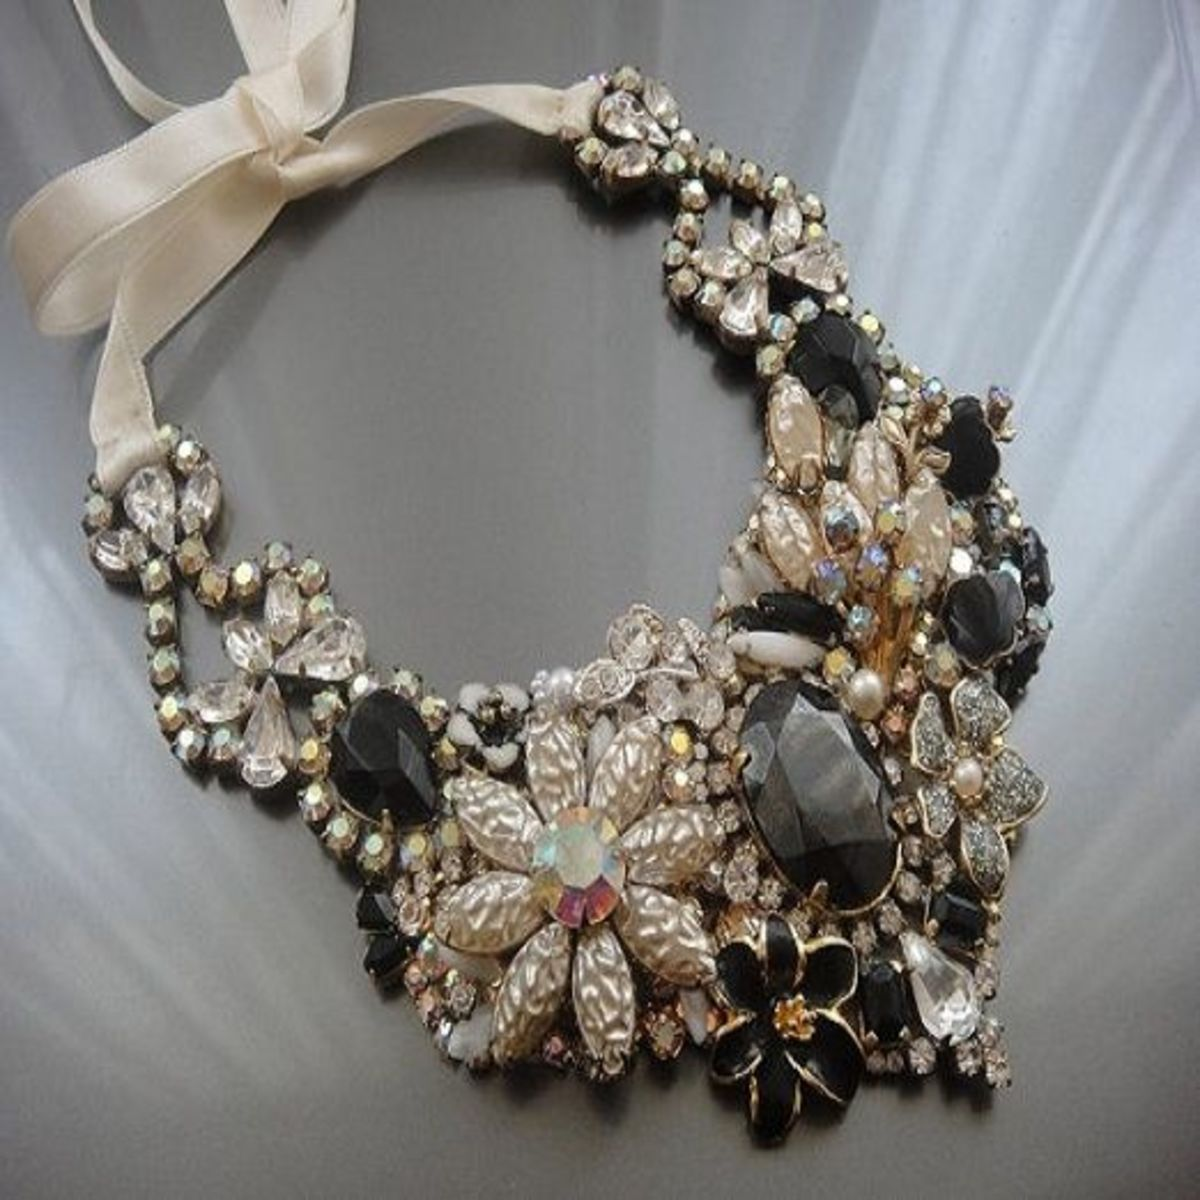 Vintage jewelry repurposed into a bib necklace from OOAKJewelz